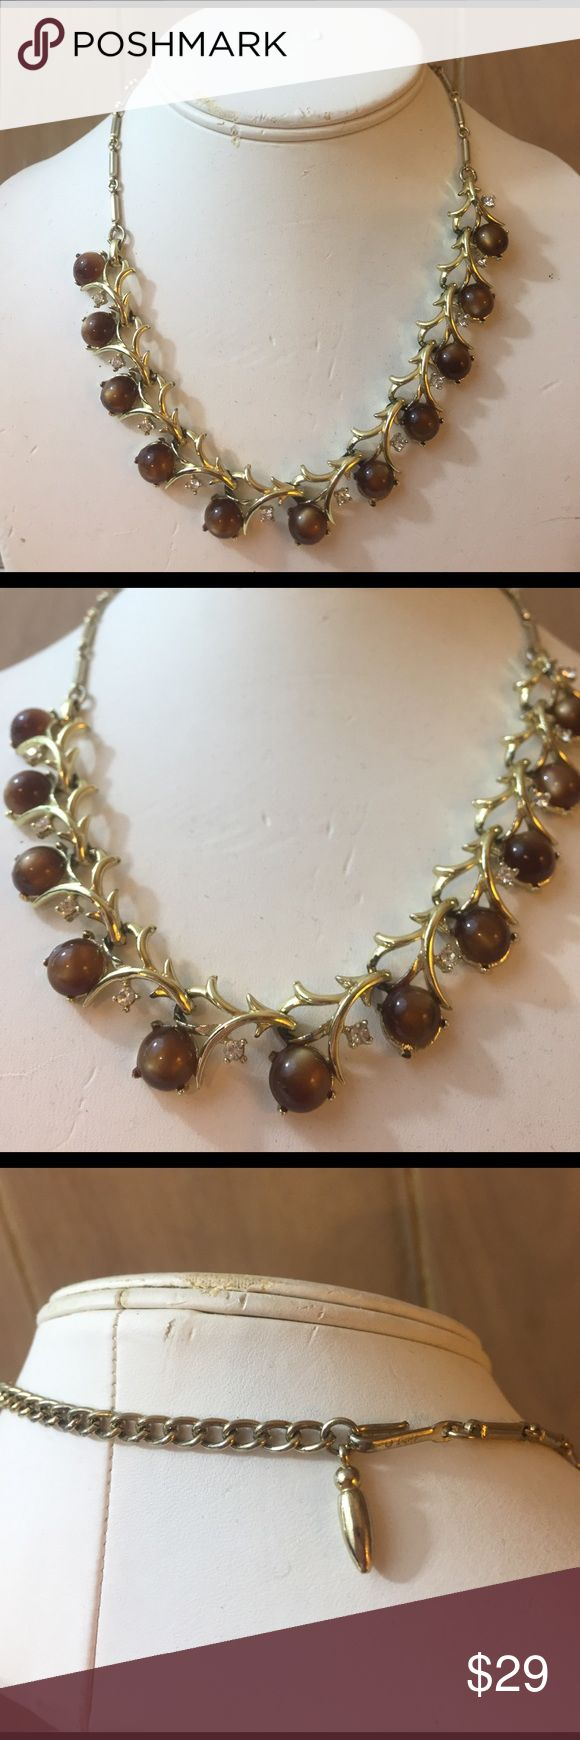 "Vintage Coro Brown Iridescent Stone Necklace Vintage Coro Brown Iridescent Stone Necklace. Excellent condition. Rhinestone small stones. Adjustable. 16"" -18"". Vintage Jewelry Necklaces"